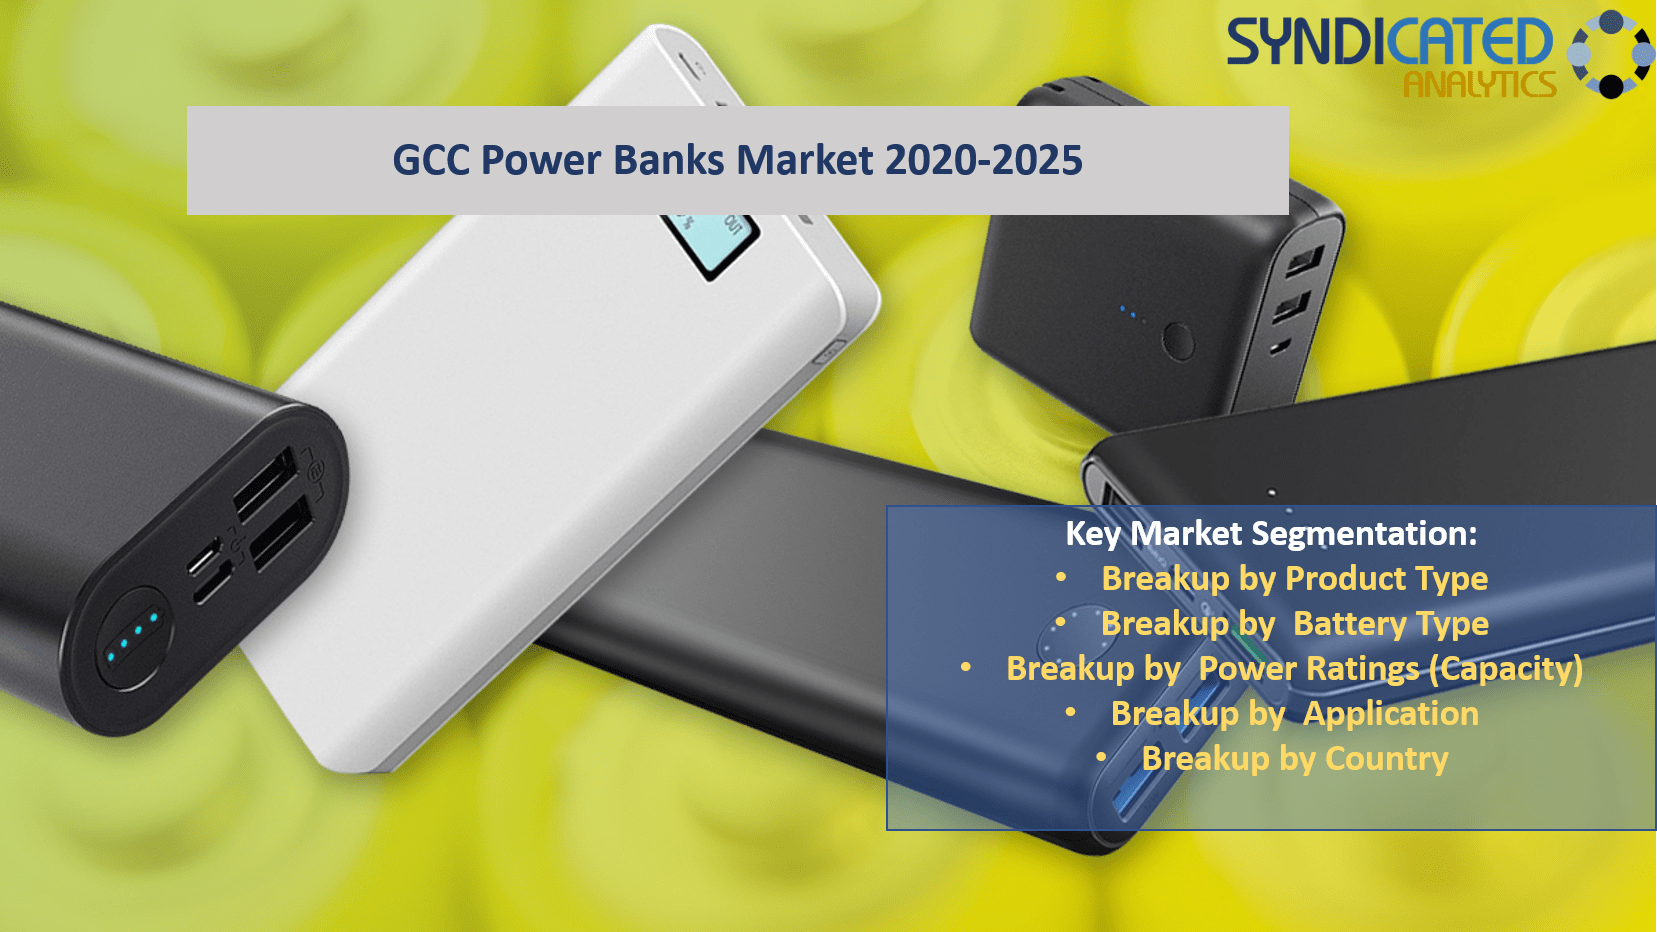 GCC Power Banks Market Report 2020-2025